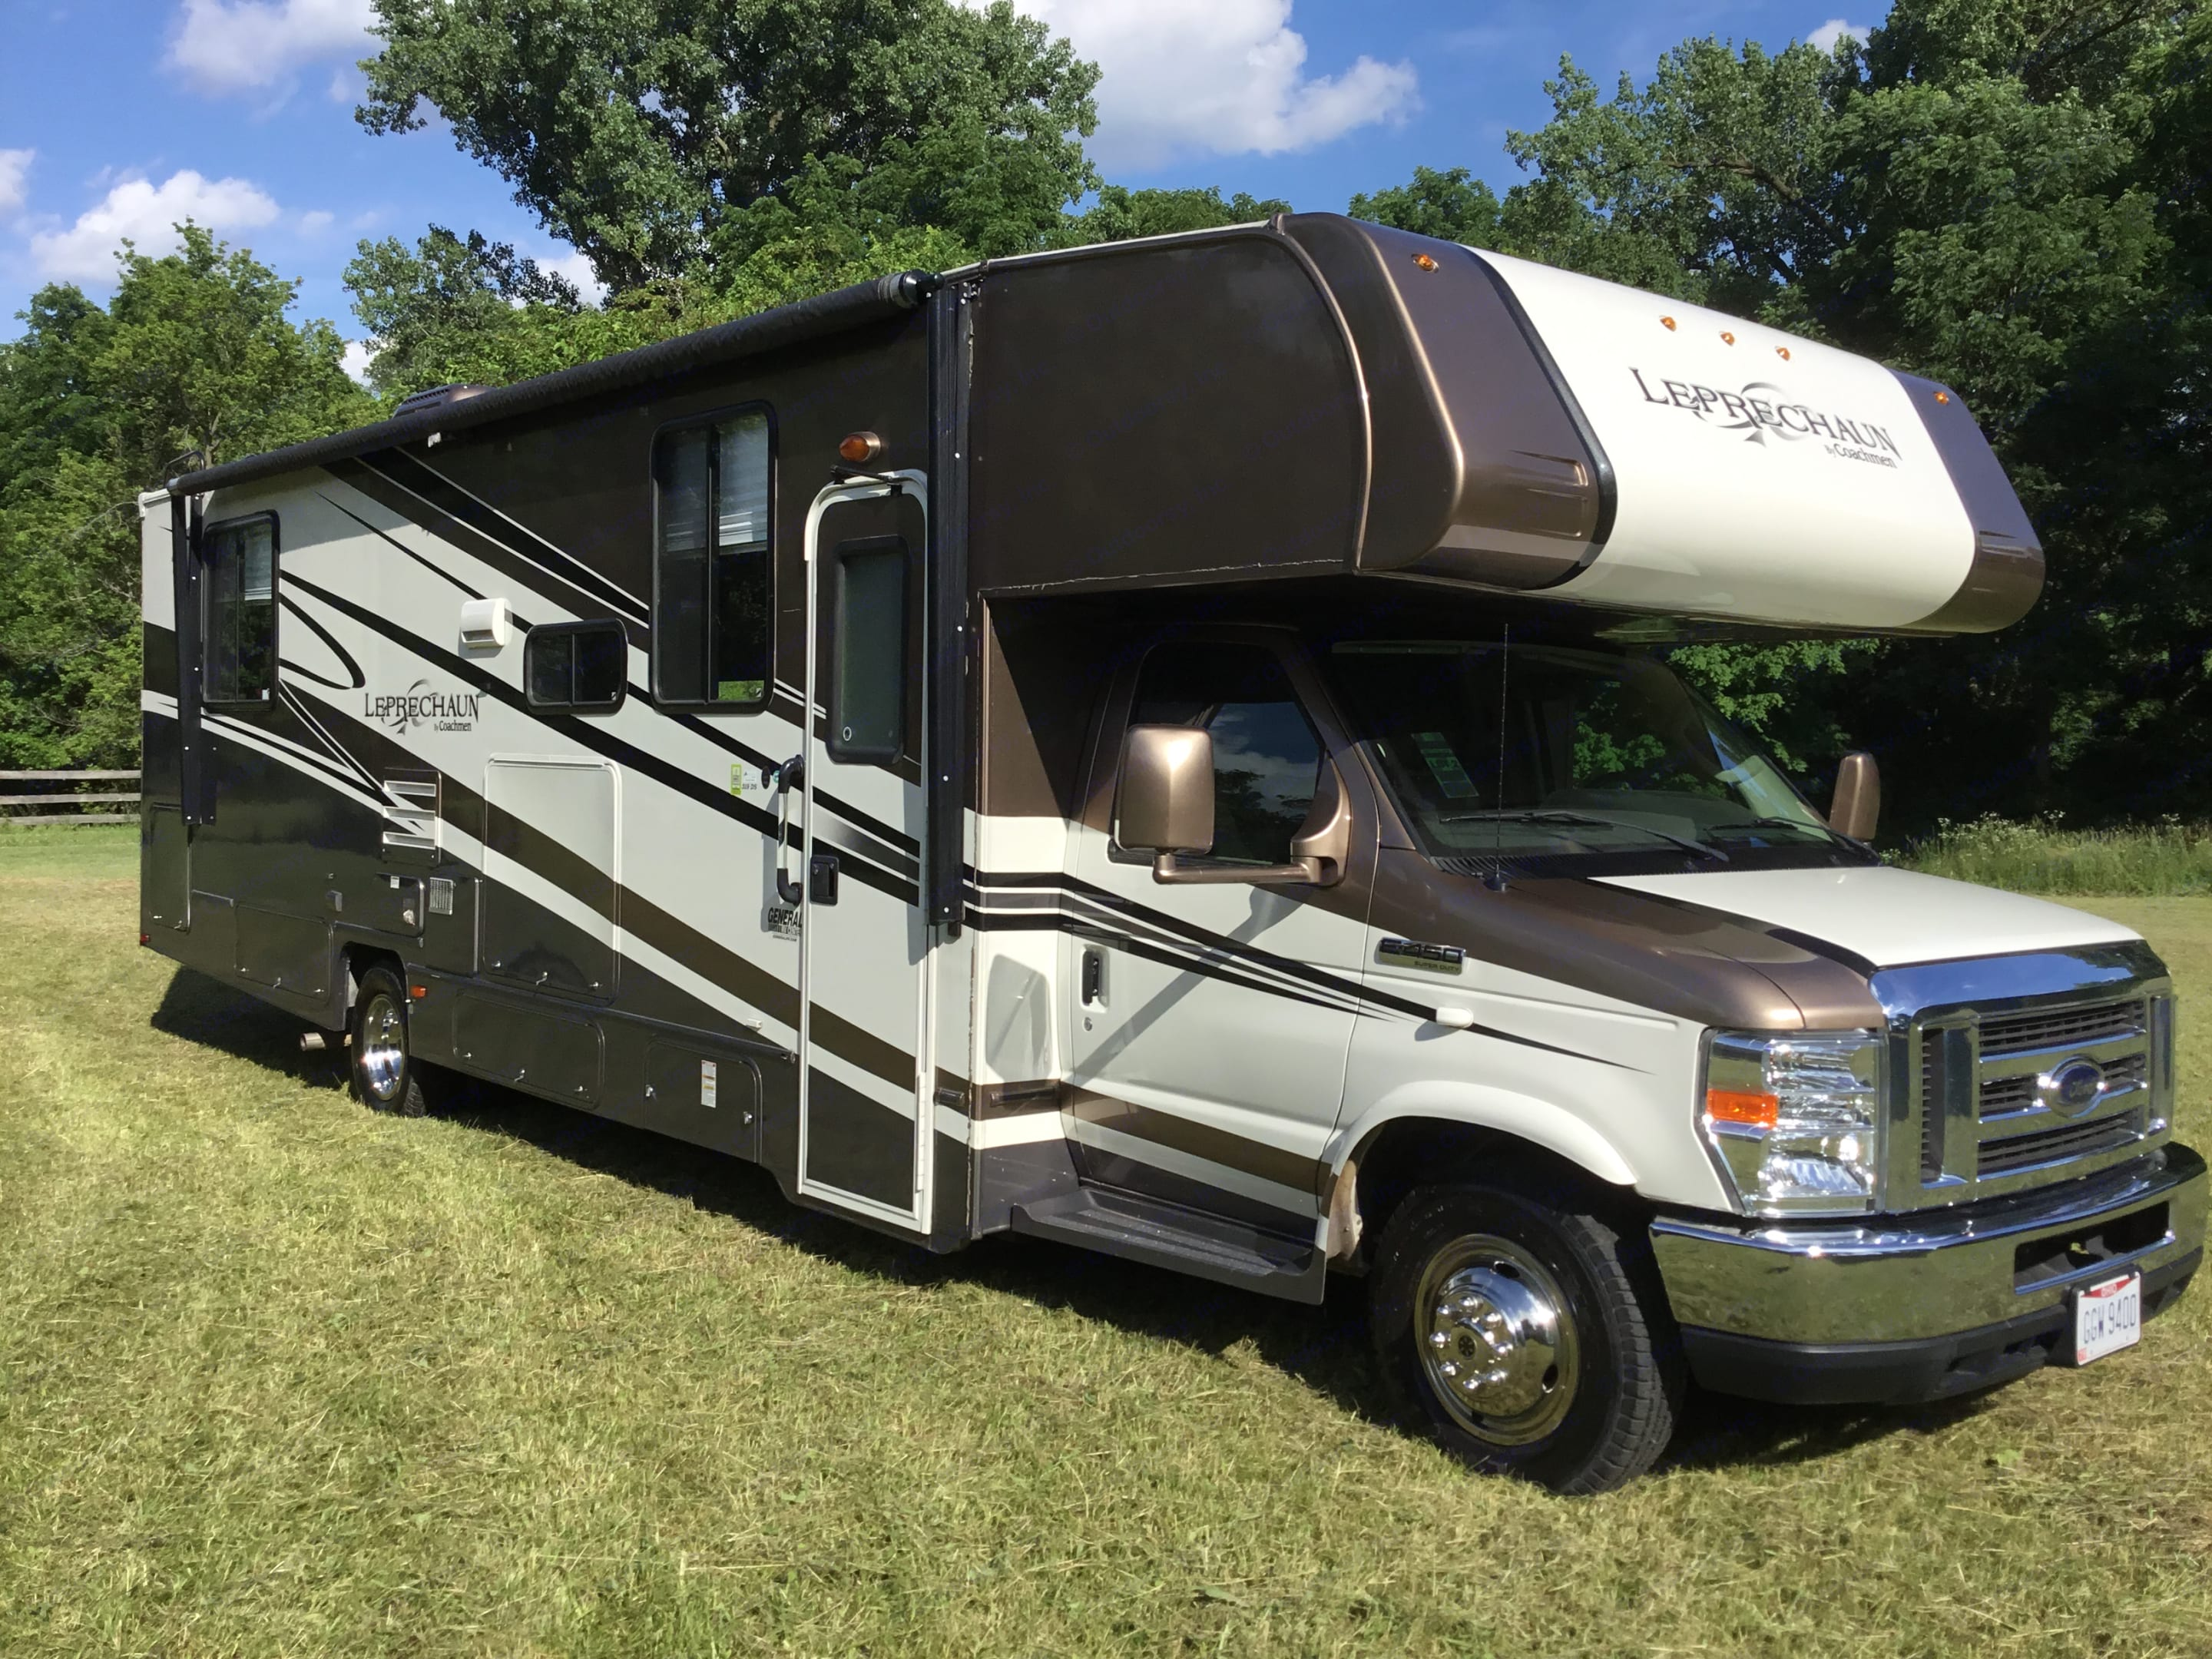 She's ready to roll, big gas powered v10 rides real smooth.. Coachmen Leprechaun 2013